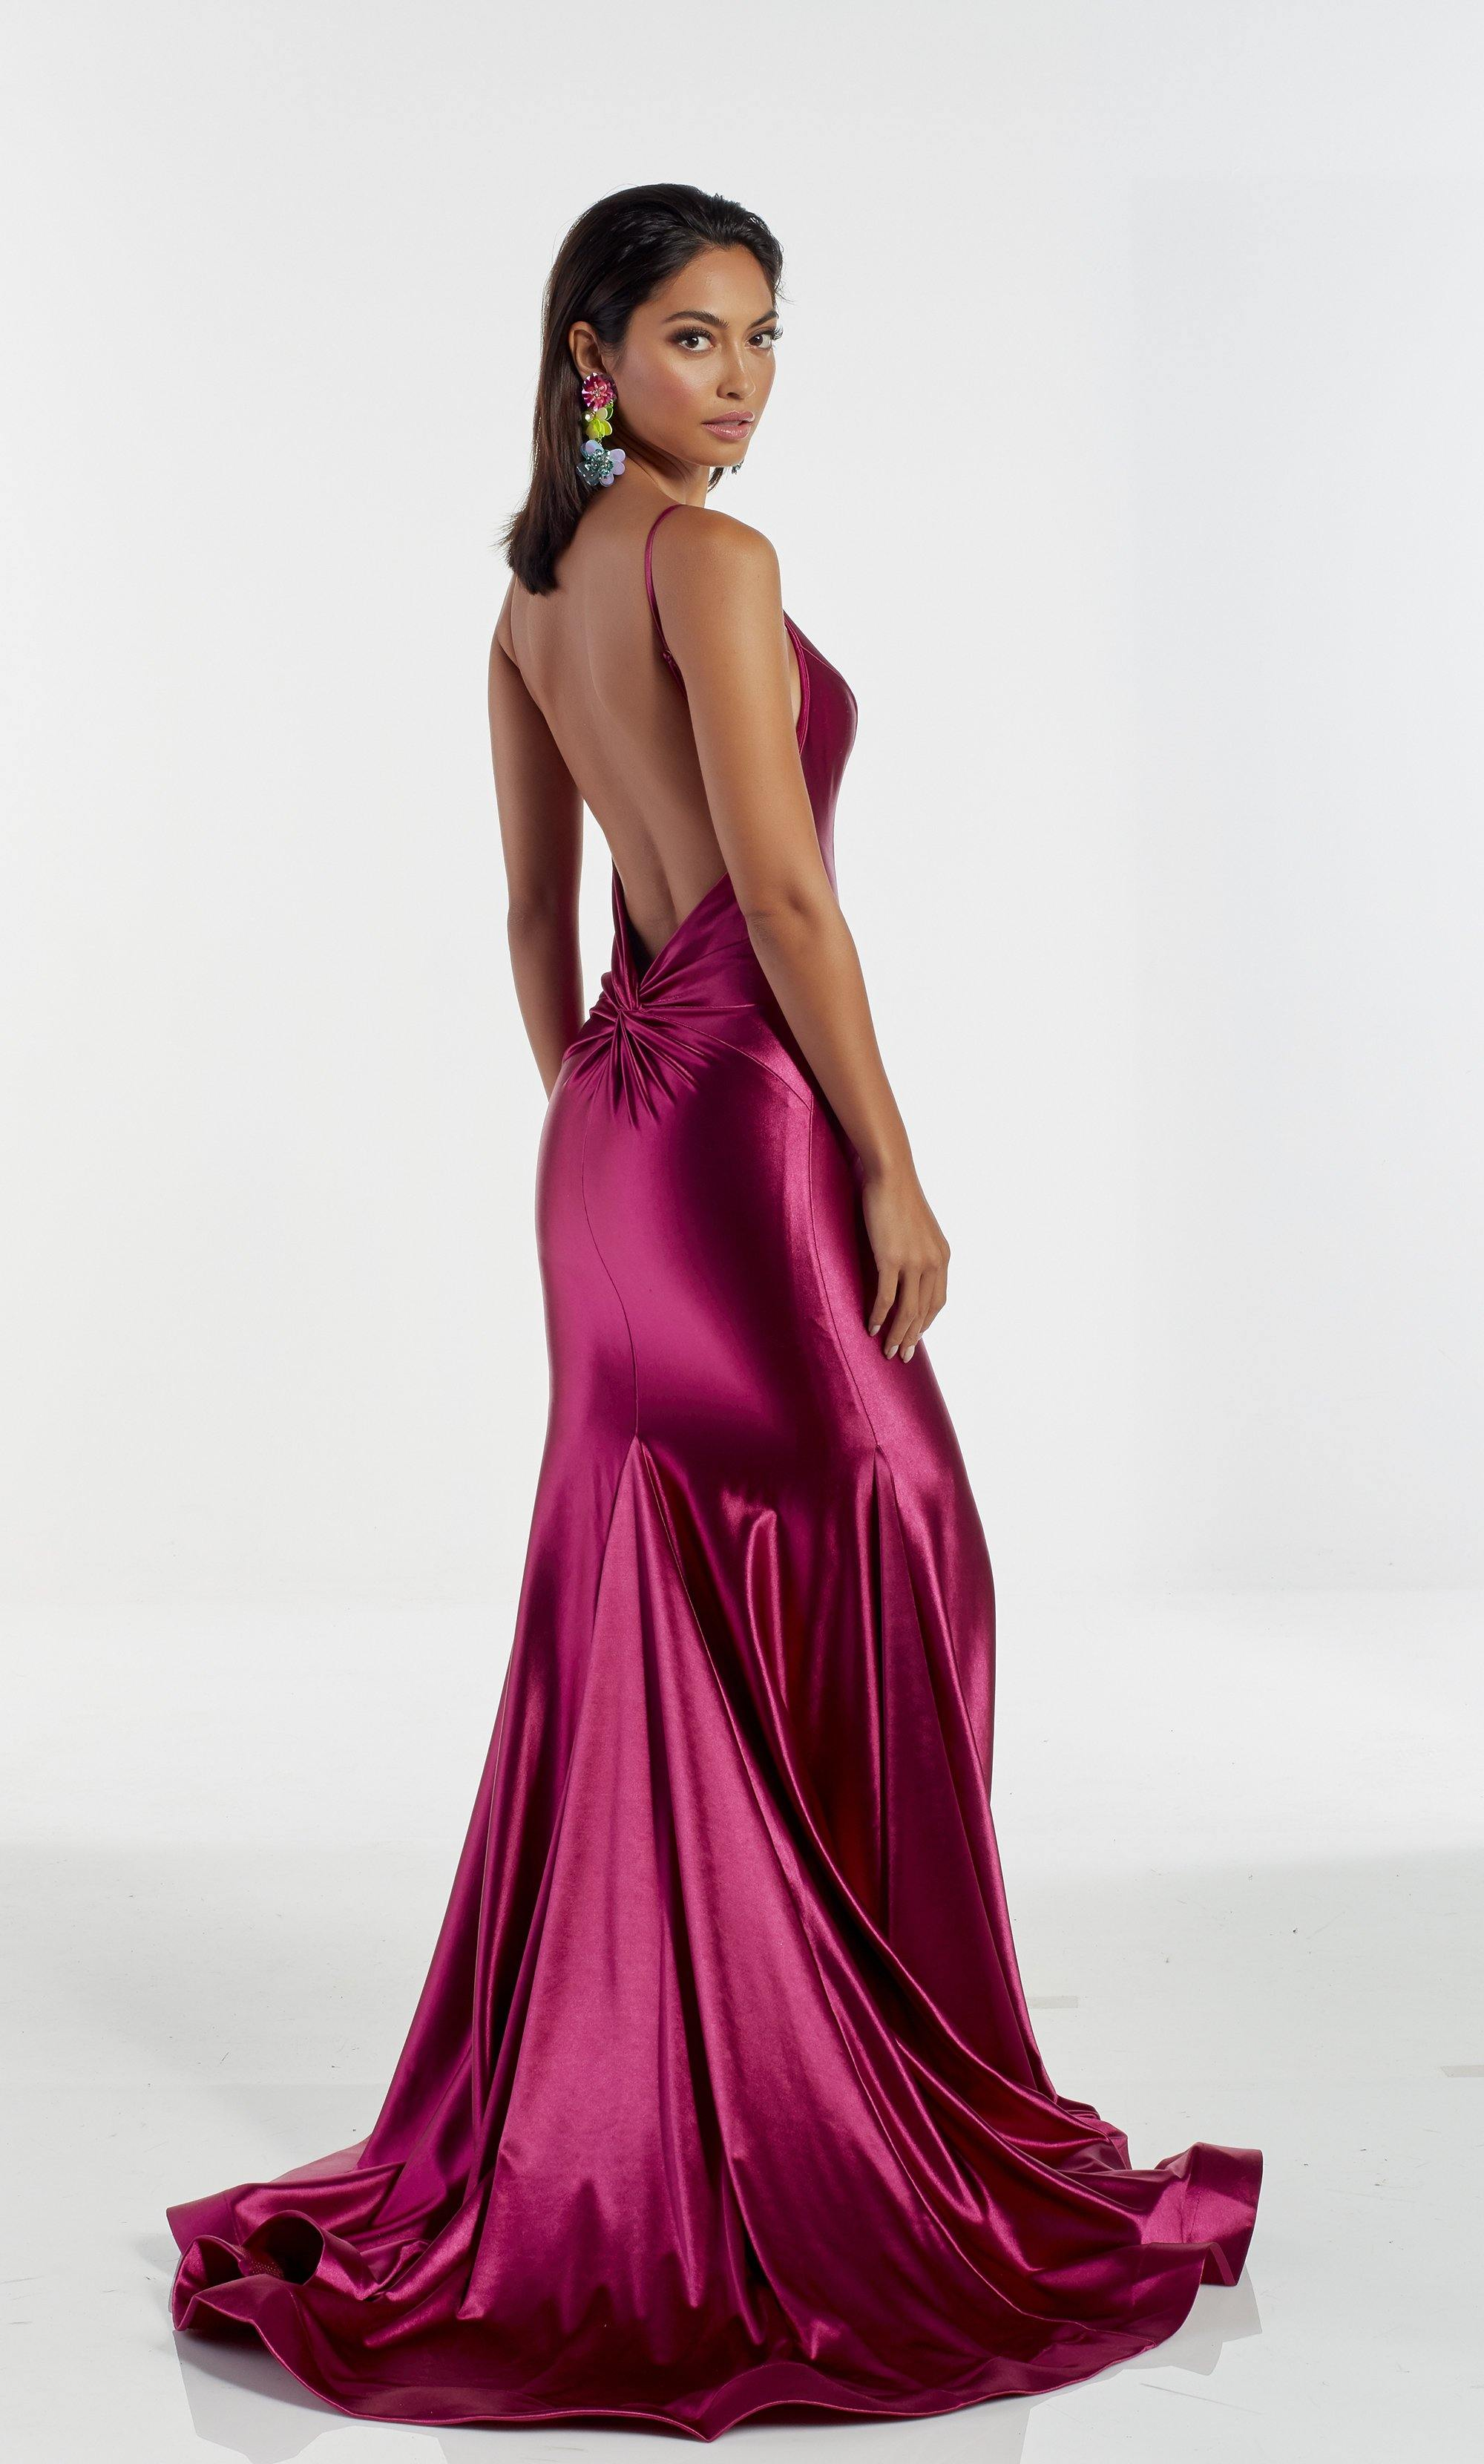 Pink satin evening dress with a V neckline